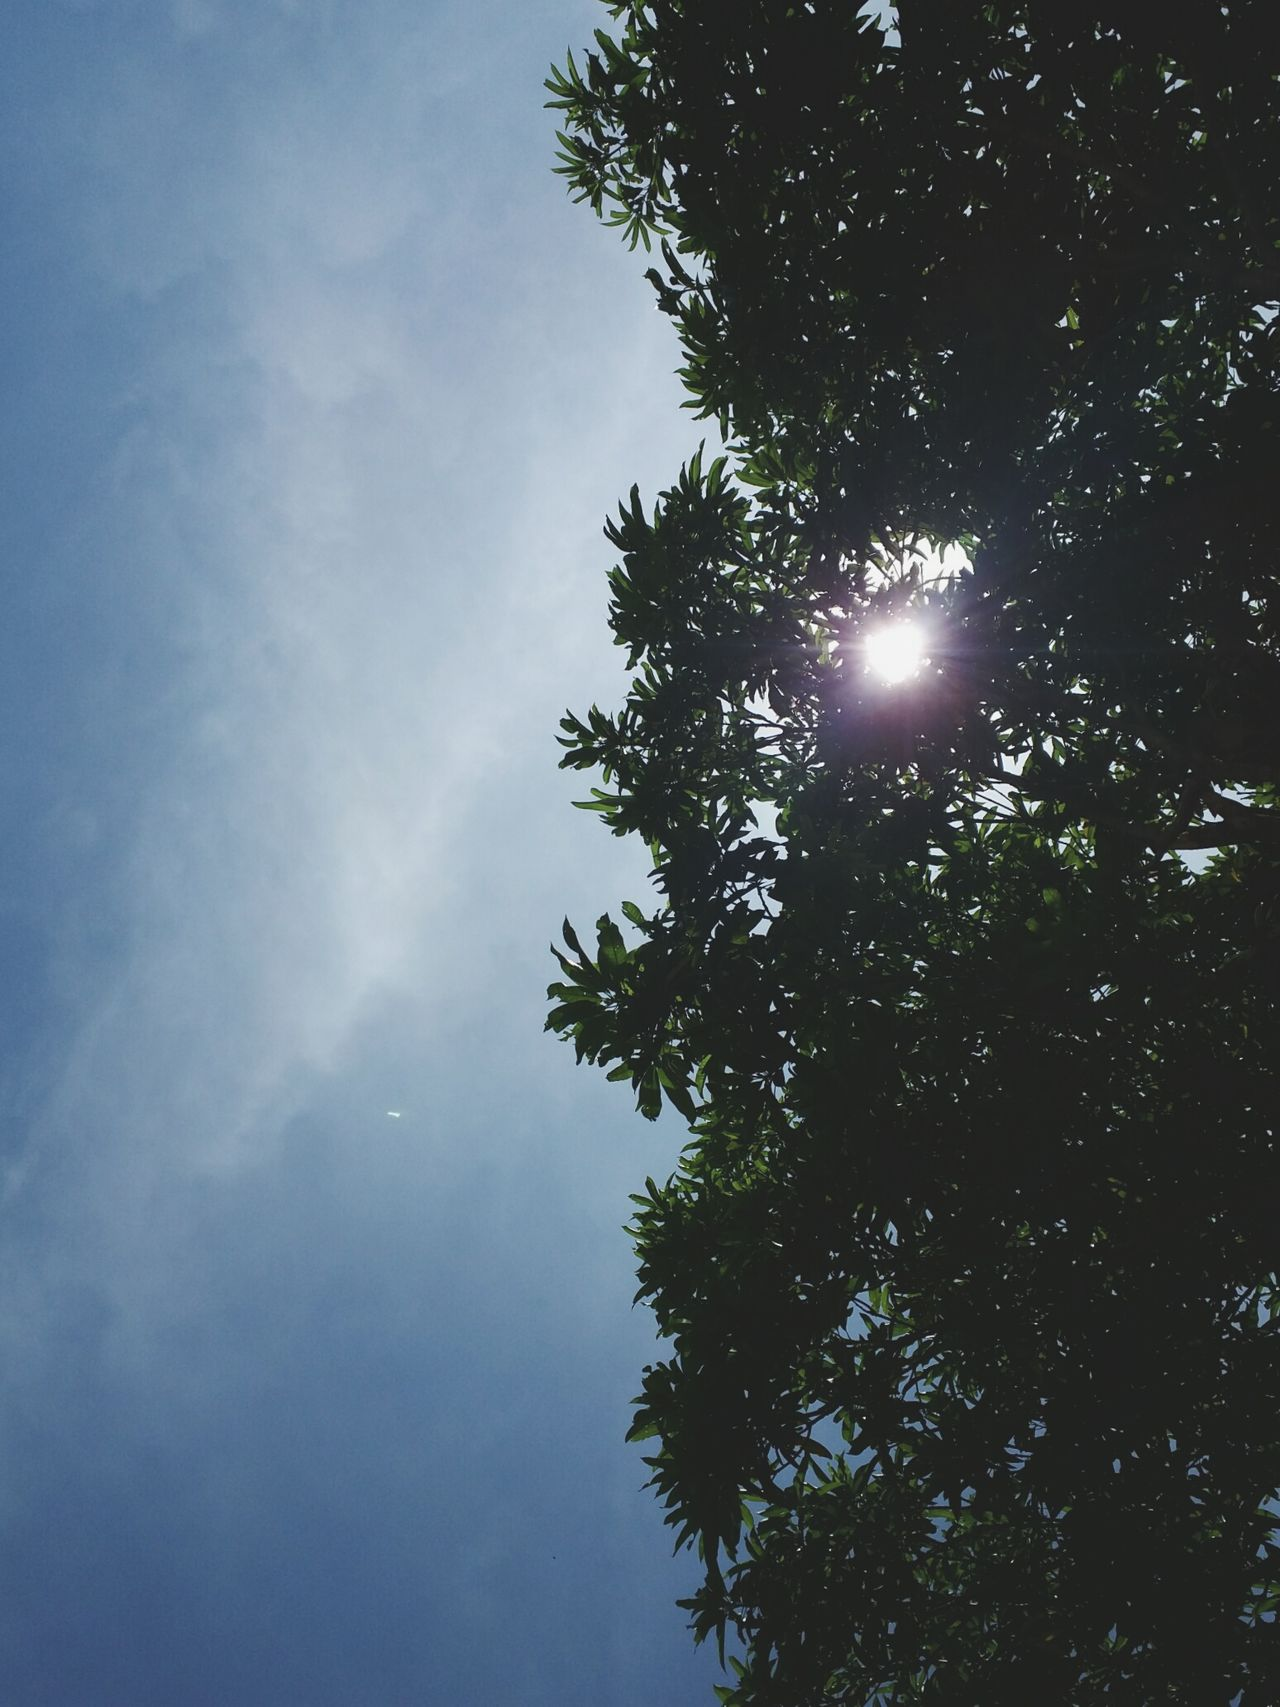 Half of everything. Tree Low Angle View Sun Growth Sunlight Beauty In Nature Scenics Sunbeam Tranquility Sky Tranquil Scene Nature Back Lit Sunny Glowing Branch Blue Lens Flare Outline Day Eyeem Philippines Eyeem Nature Sunny Nature Green Color